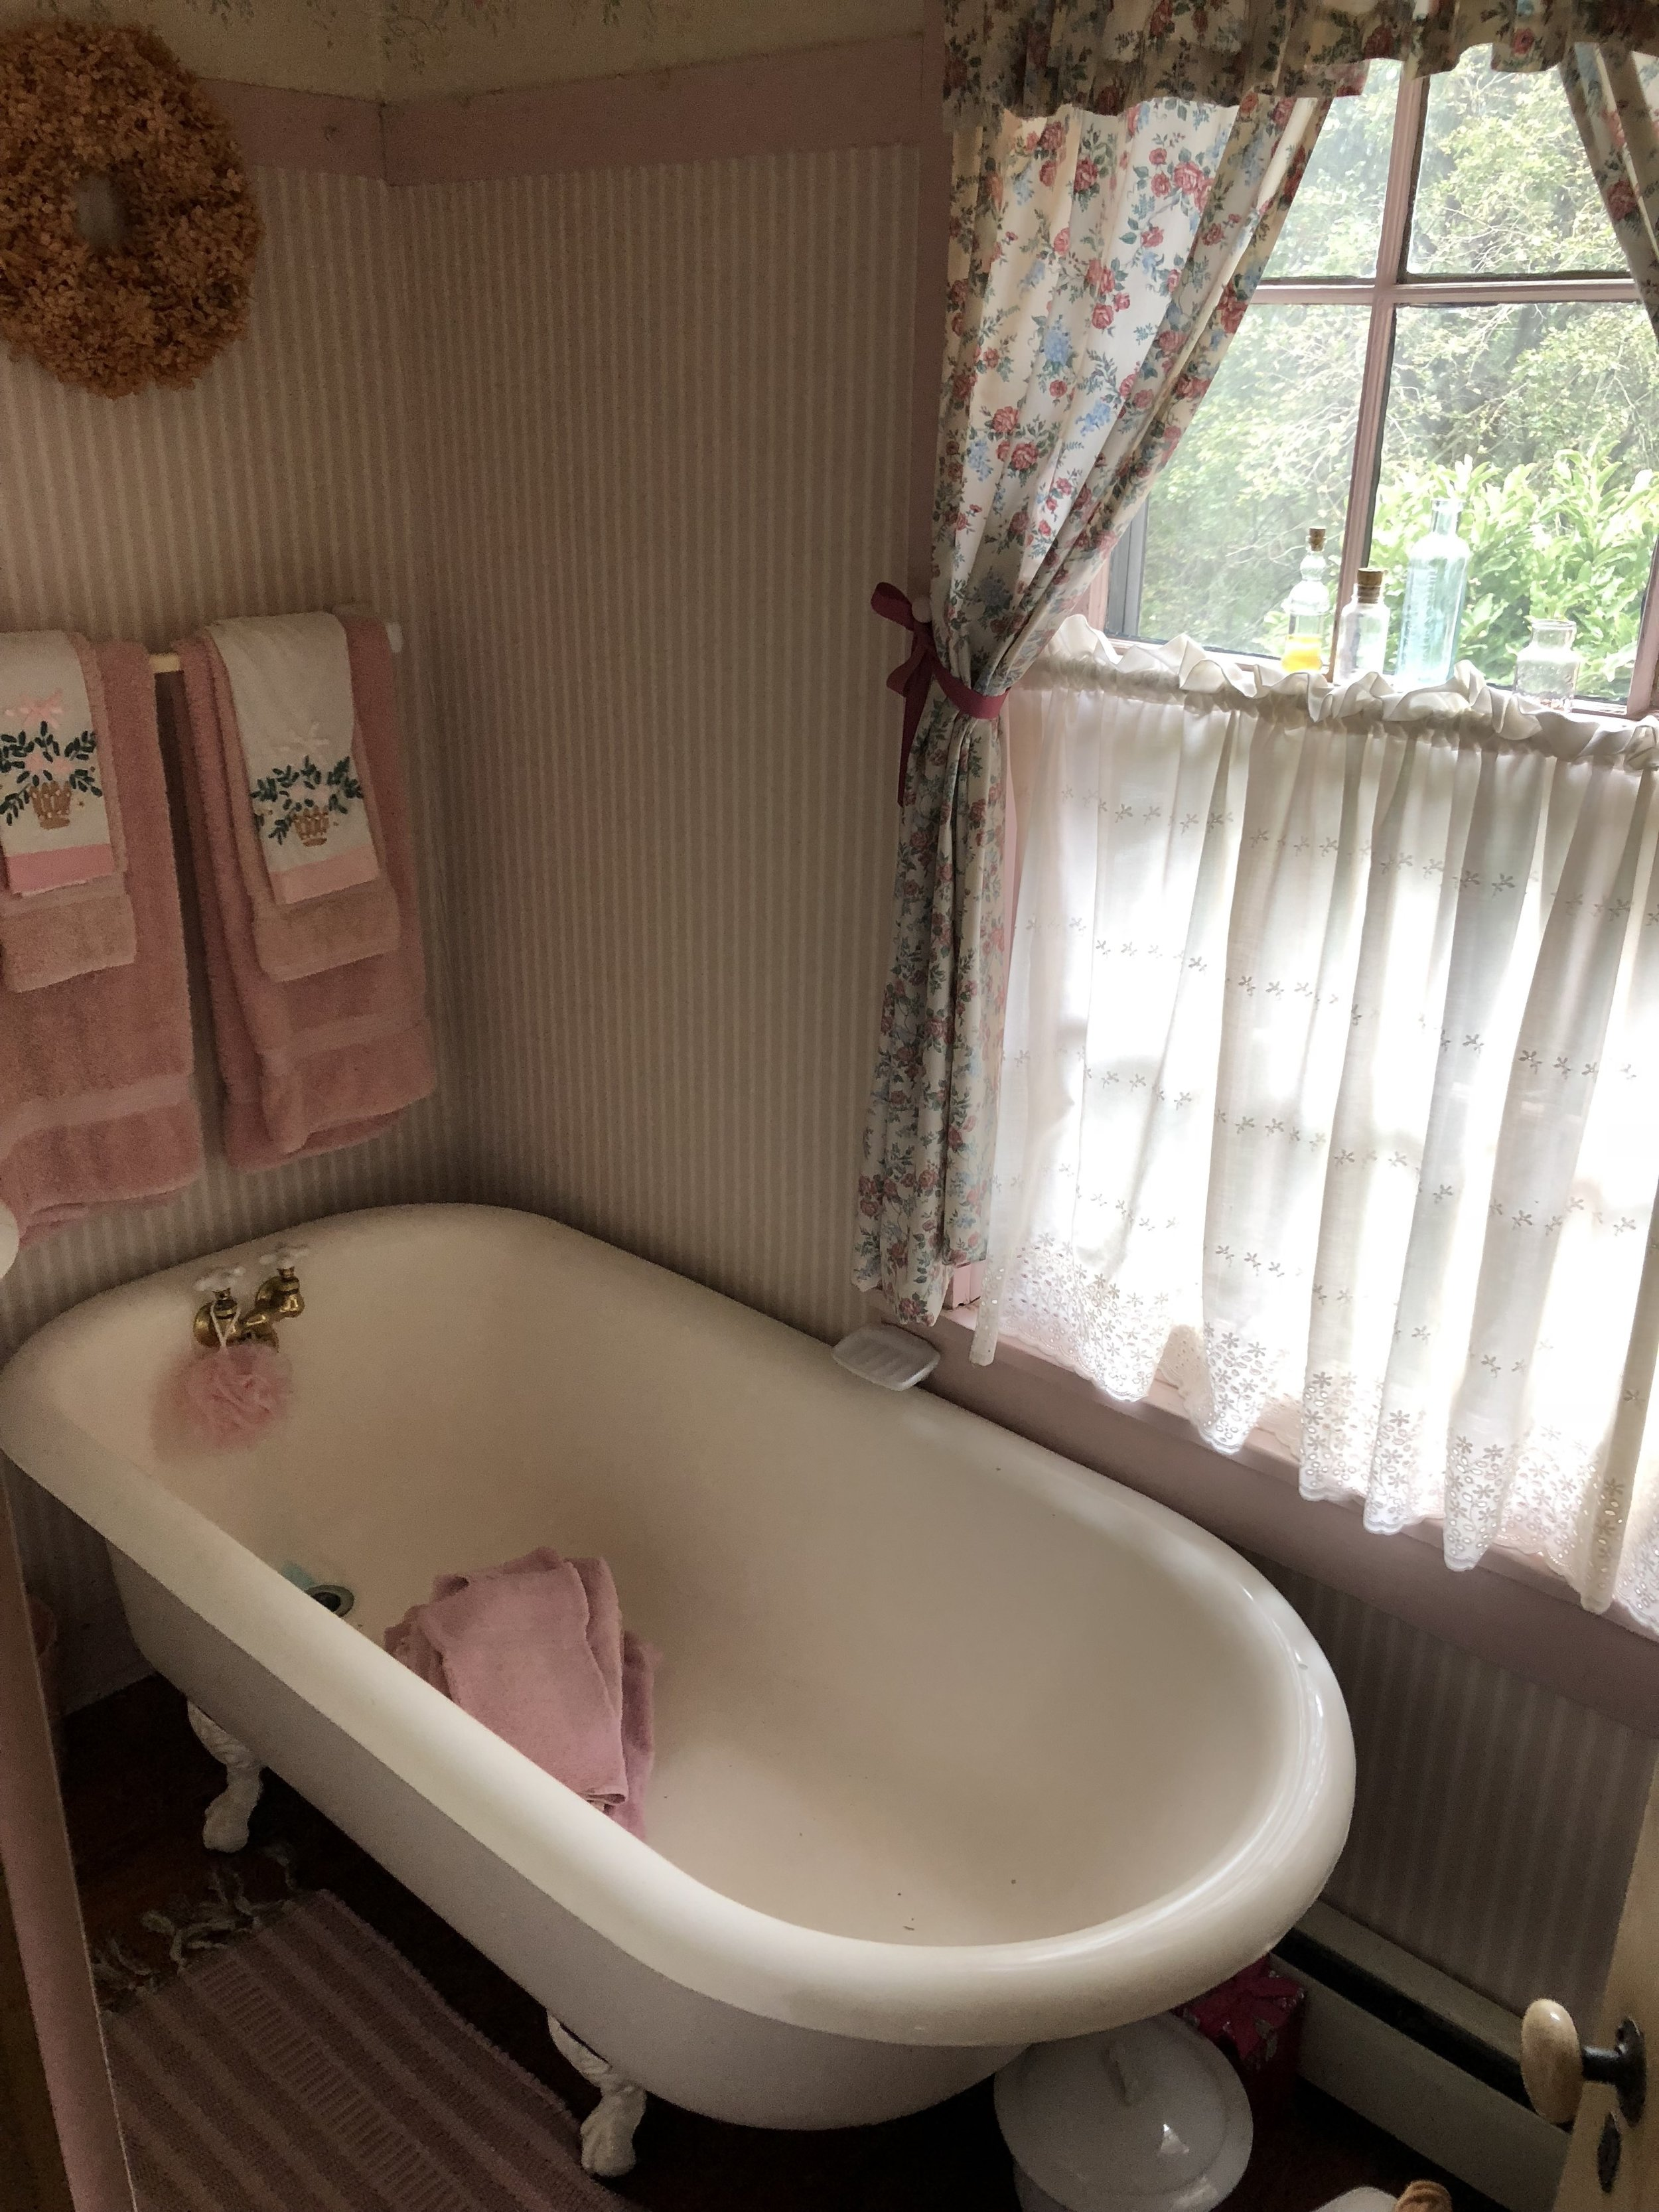 {A tie for favorite room alongside the library, Pat's pink bathroom offers charm and character.}